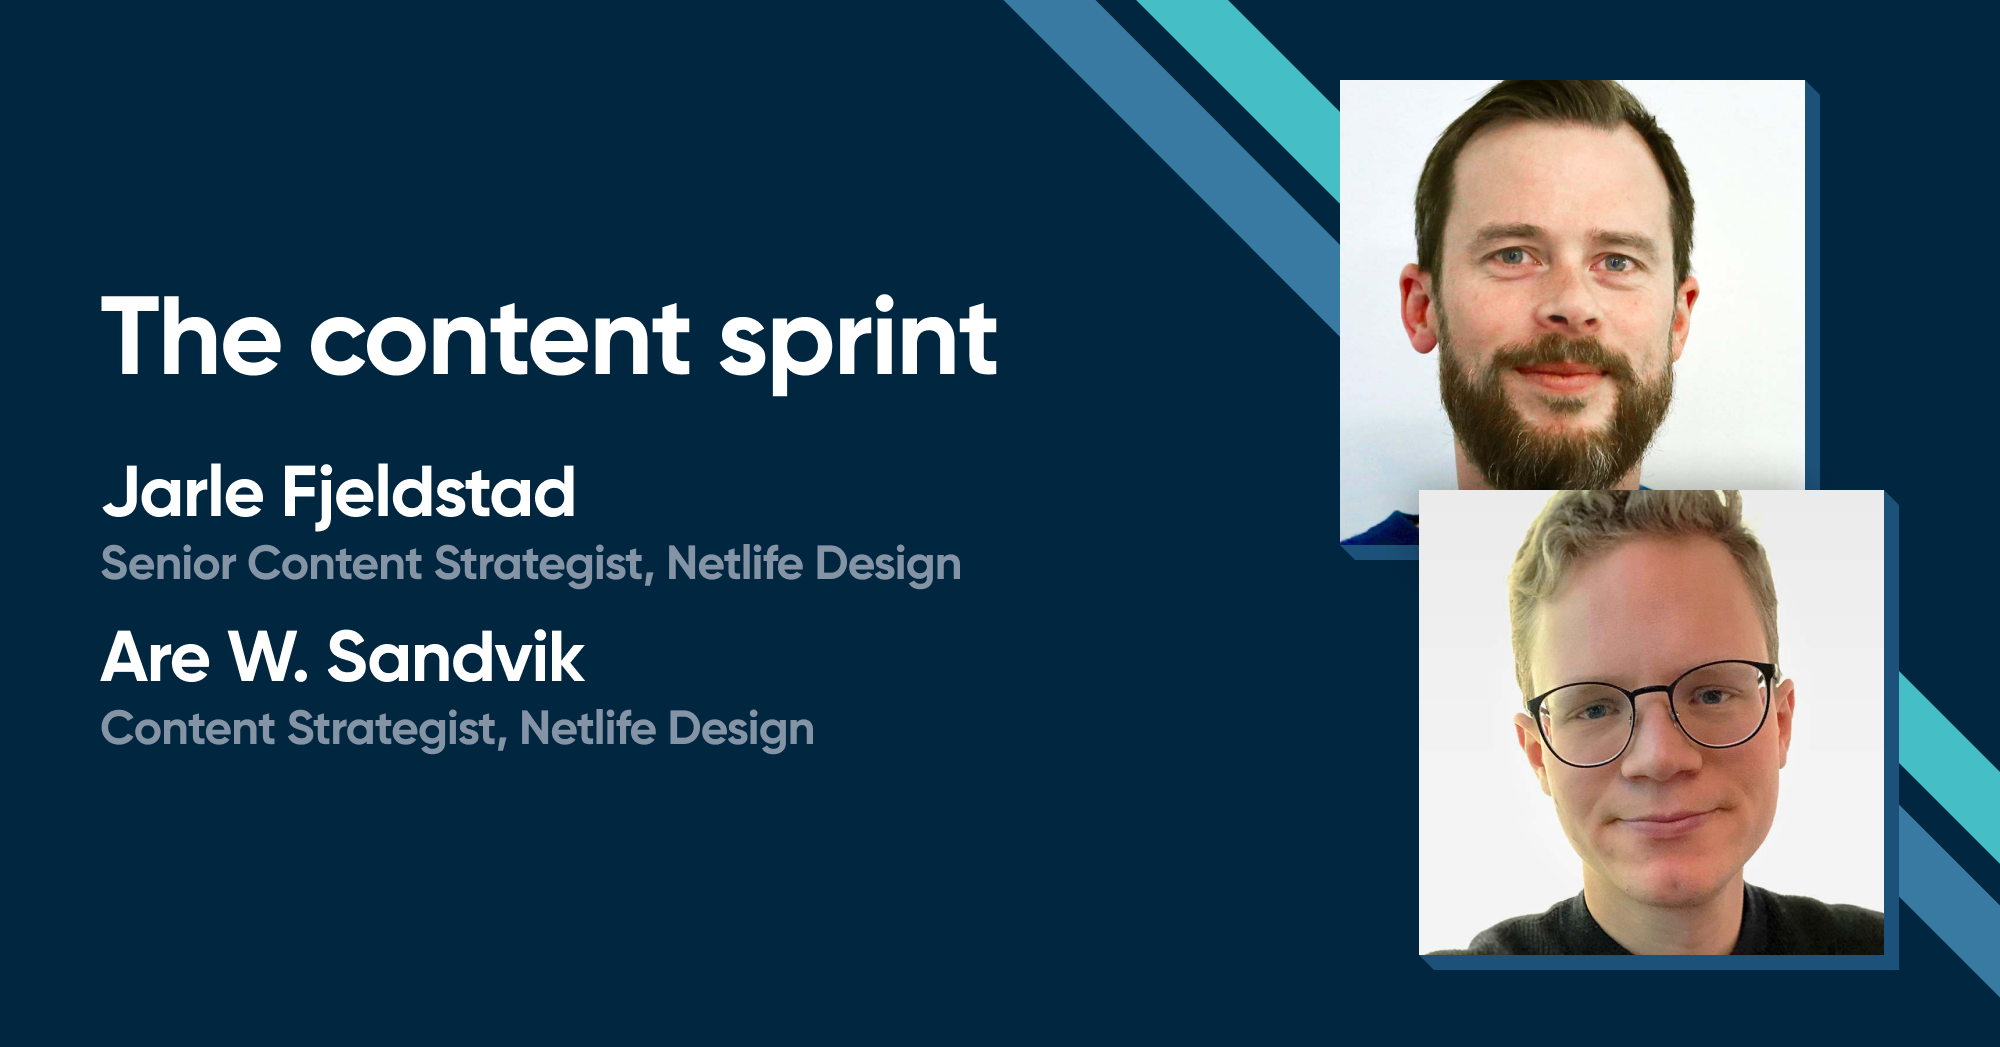 Jarle Fjeldstad and Are W Sandvik - The content sprint